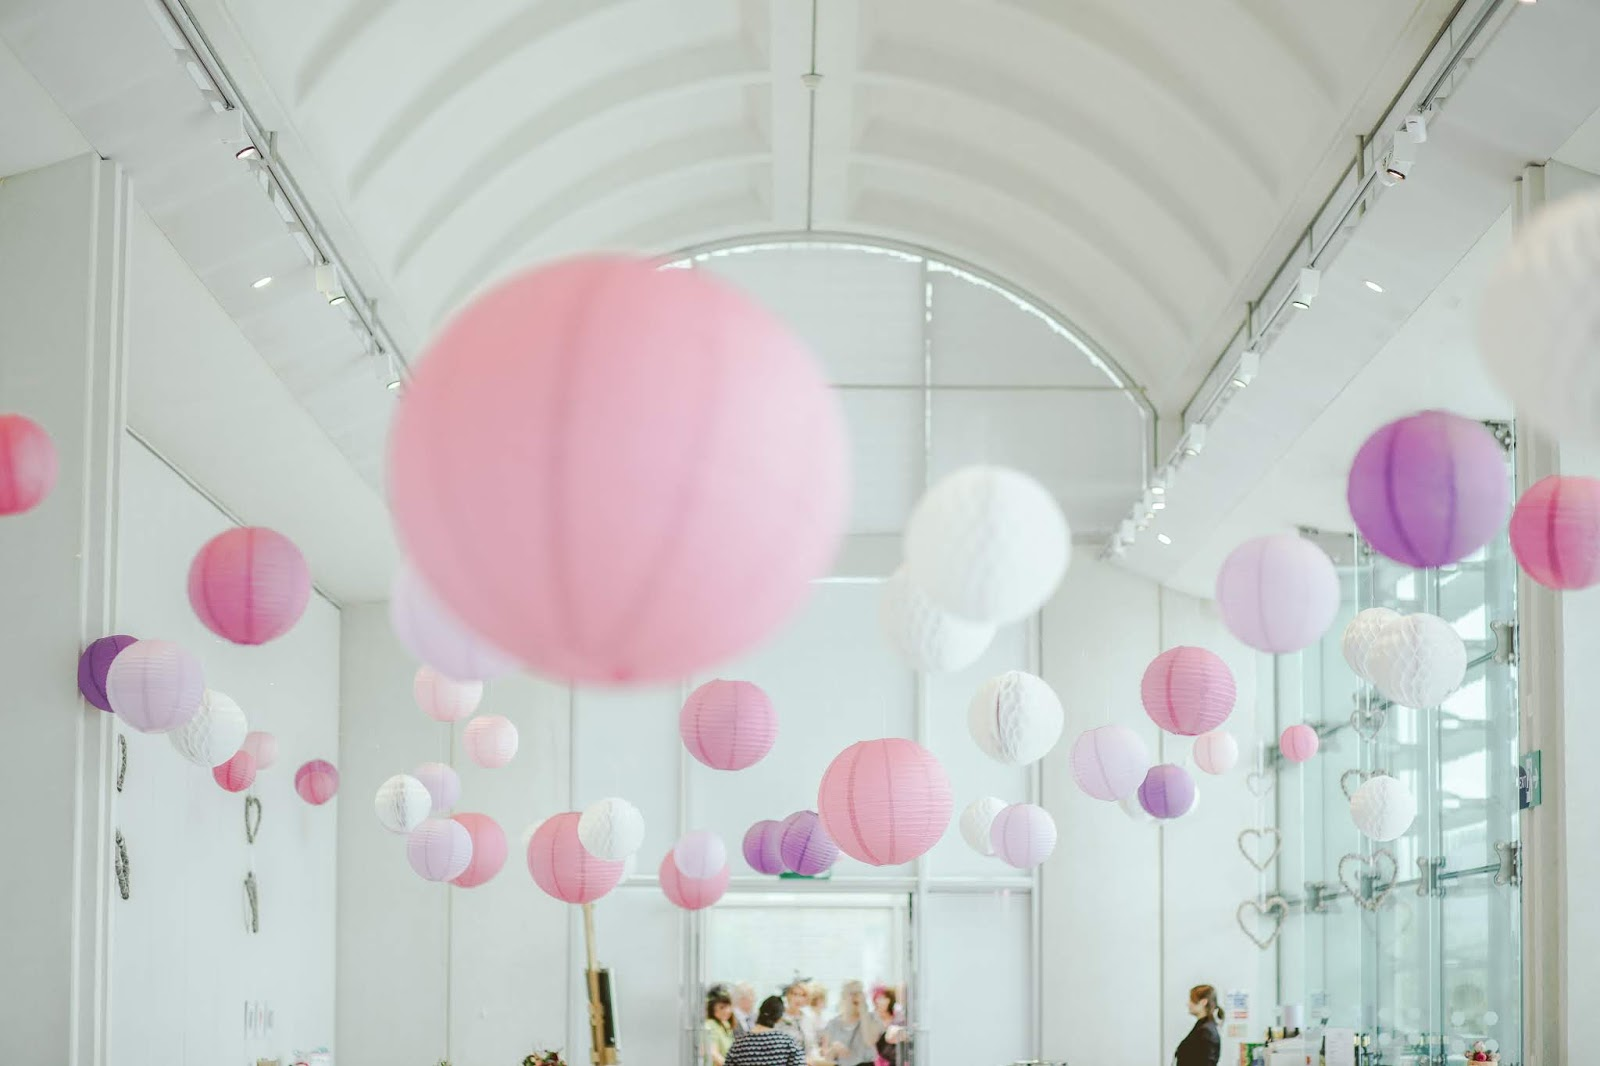 Photography of a party scene with hanging decorations of pink and purple paper lanterns.